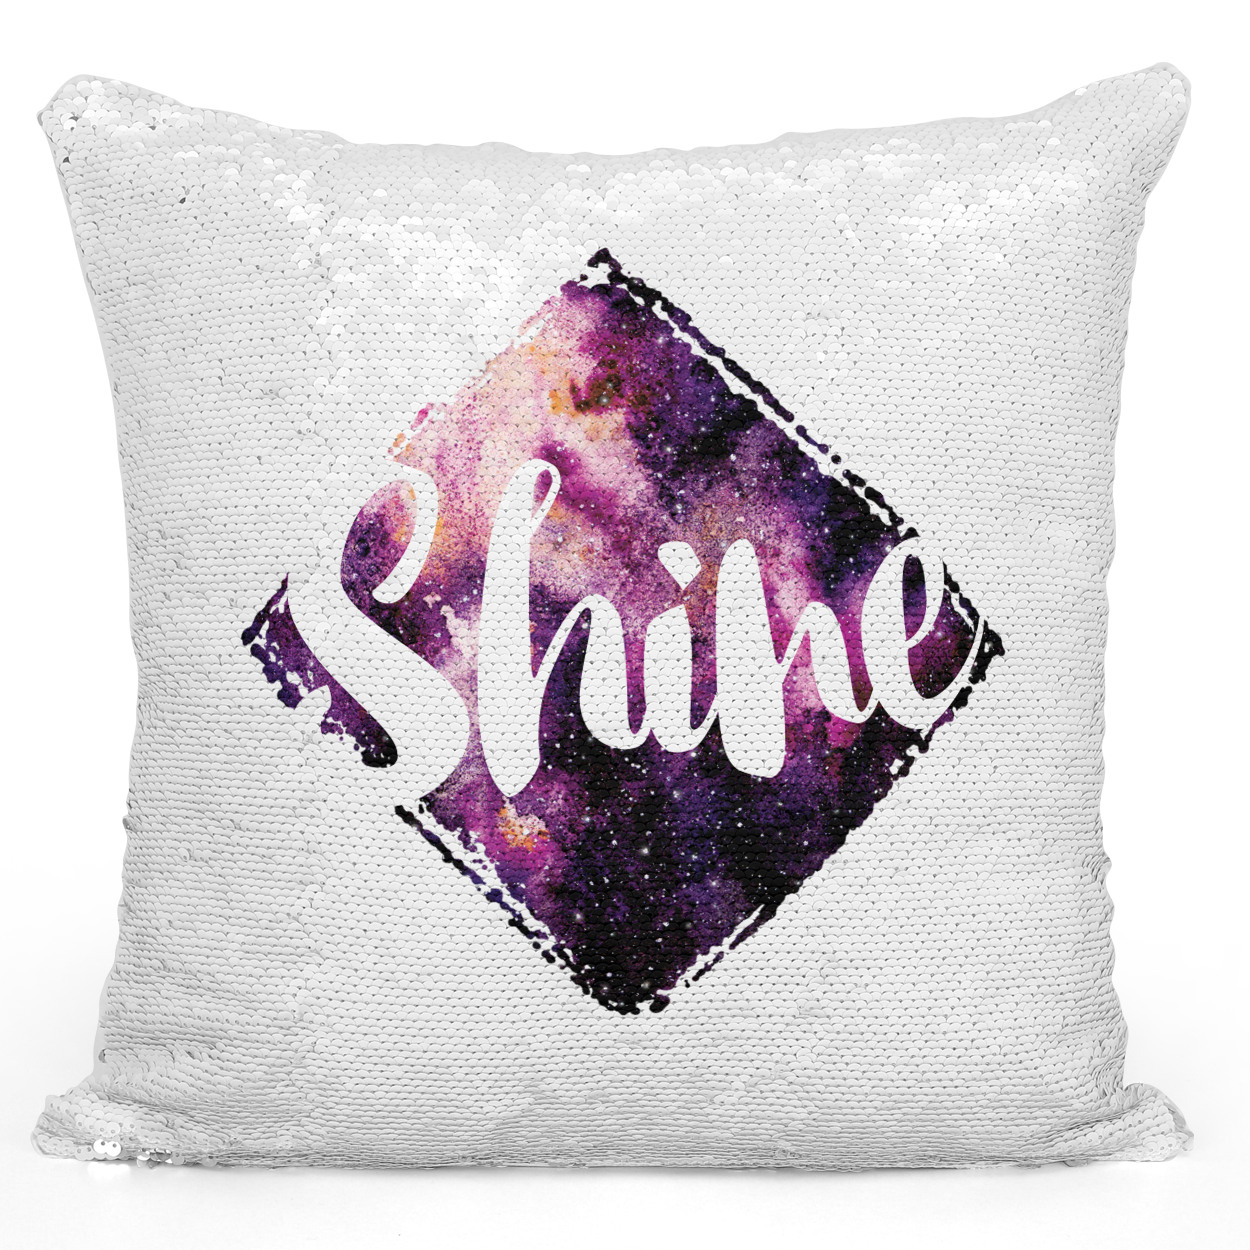 Sequin Pillow Magic Mermaid Throw Pillow Shine Galaxy And Stars Astronomy Theme - Pure White Printed 16 x 16 inch Square Home Decor Couch Pillow Loud Universe